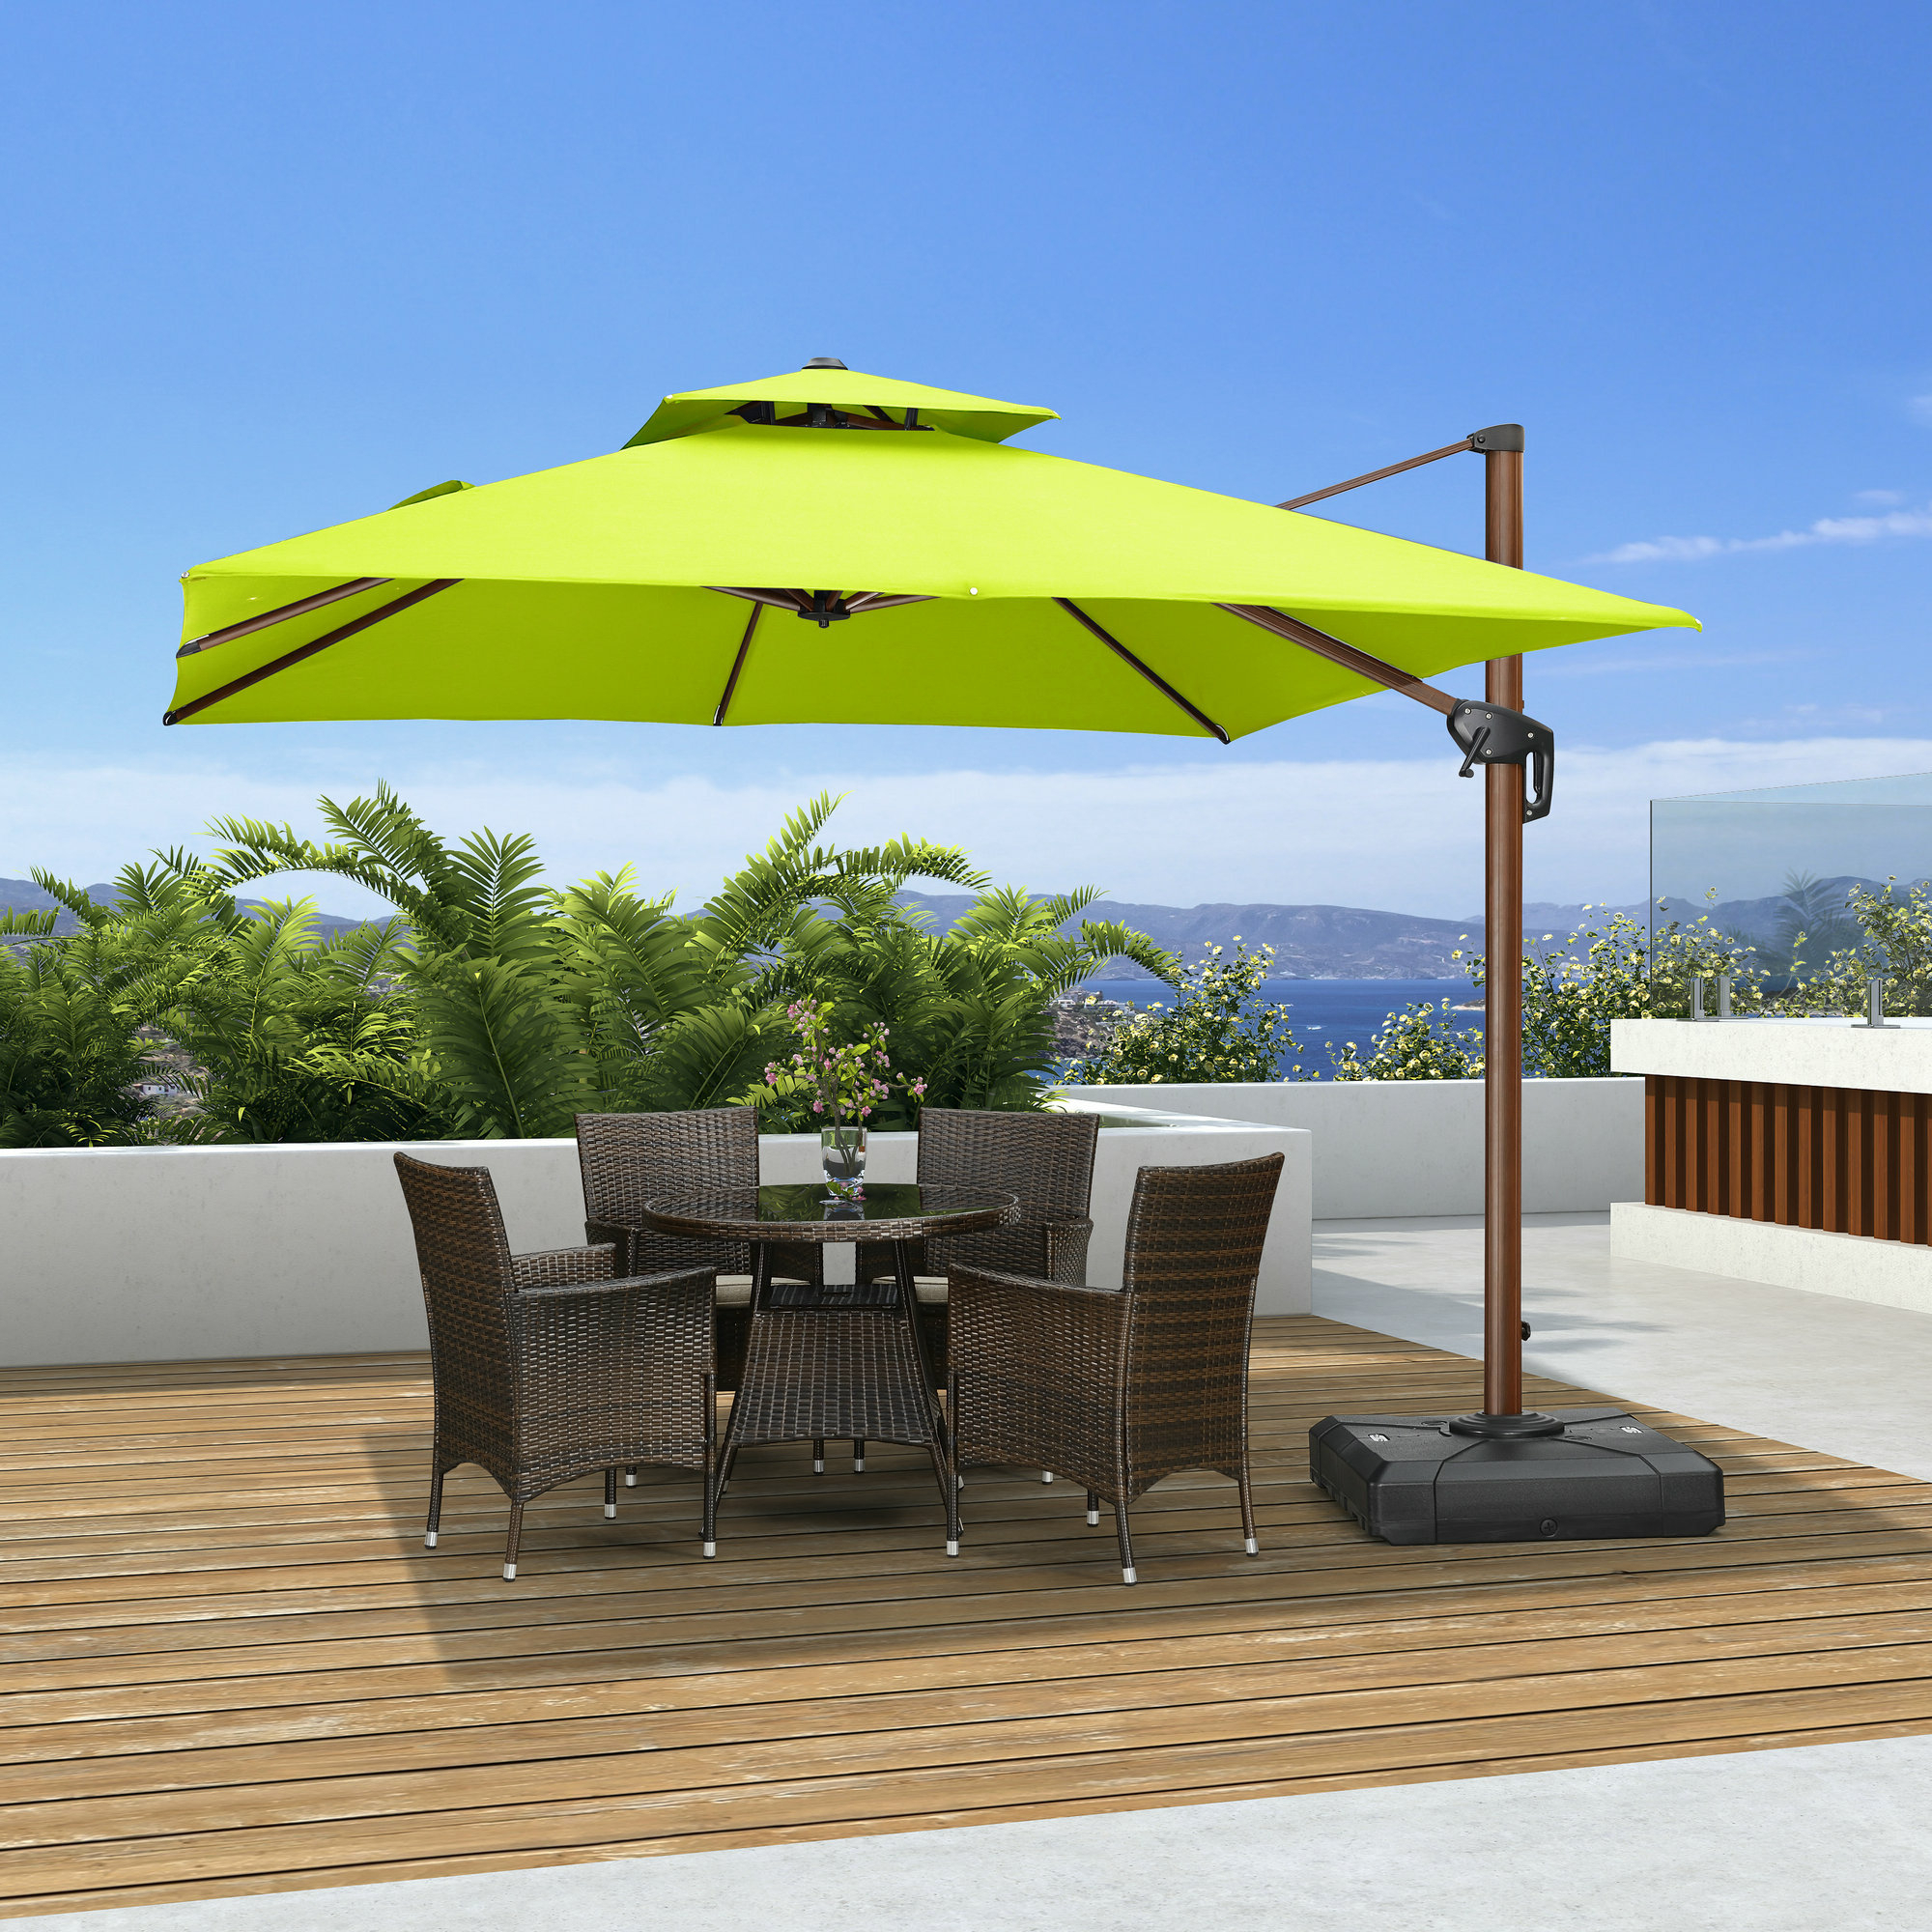 Windell Square Cantilever Umbrellas Within Fashionable Waddell 10' Square Cantilever Umbrella (View 10 of 20)